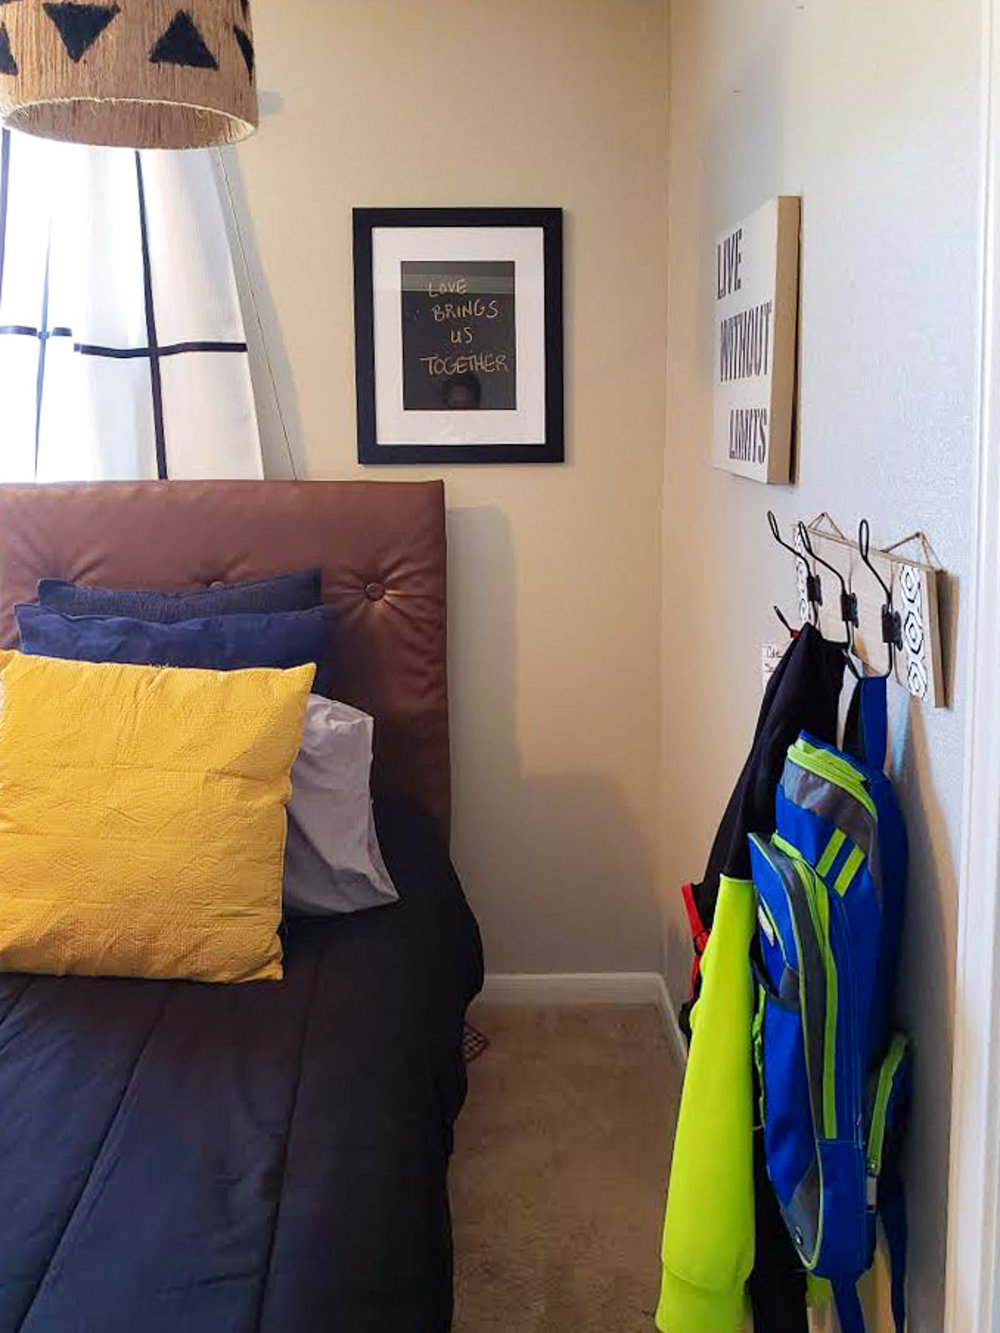 www.JadoreleDecor.com | Simple organization tips for children and parents in blended families. | How to organize a shared children's bedroom. #sharedkidbedrooms #childbedroomorganization